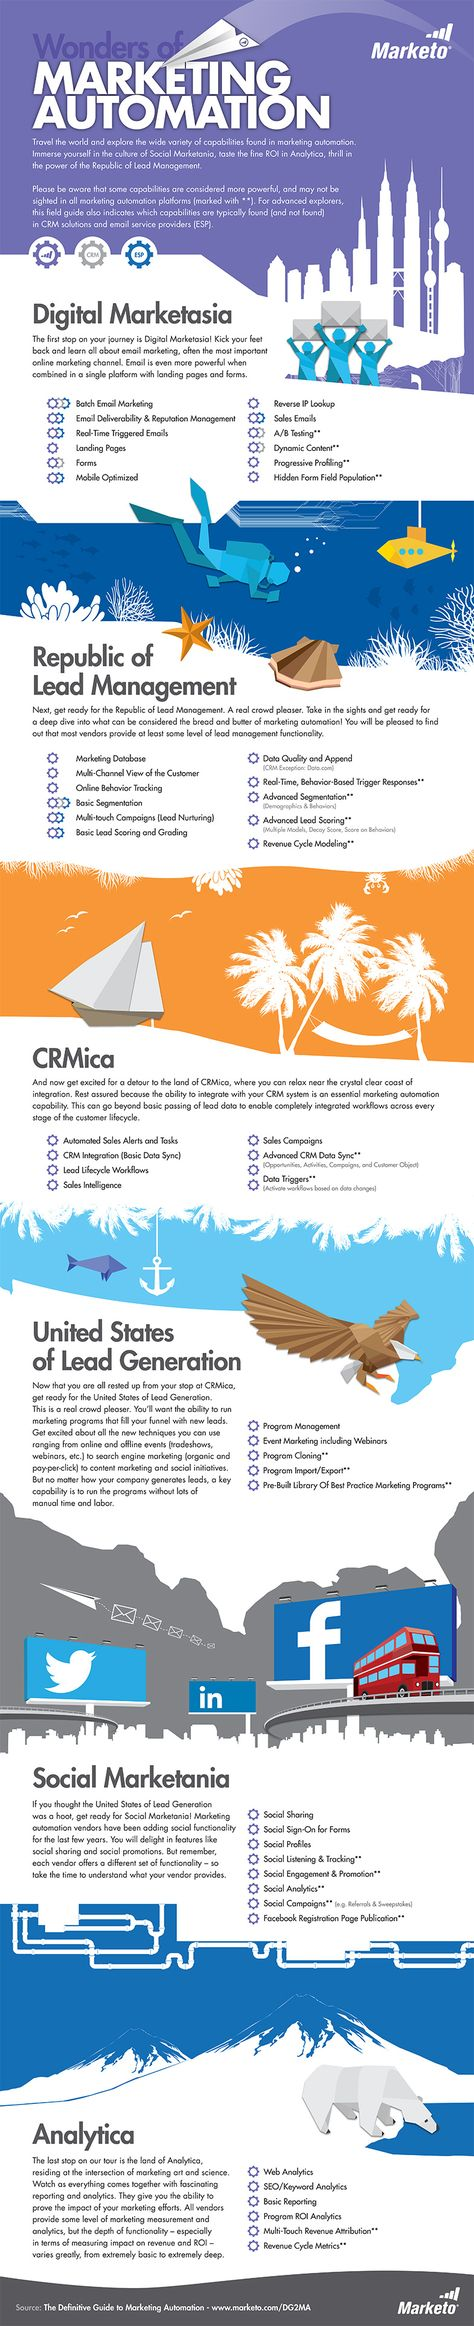 Welcome to the Wonderful World of Marketing Automation [Infographic]